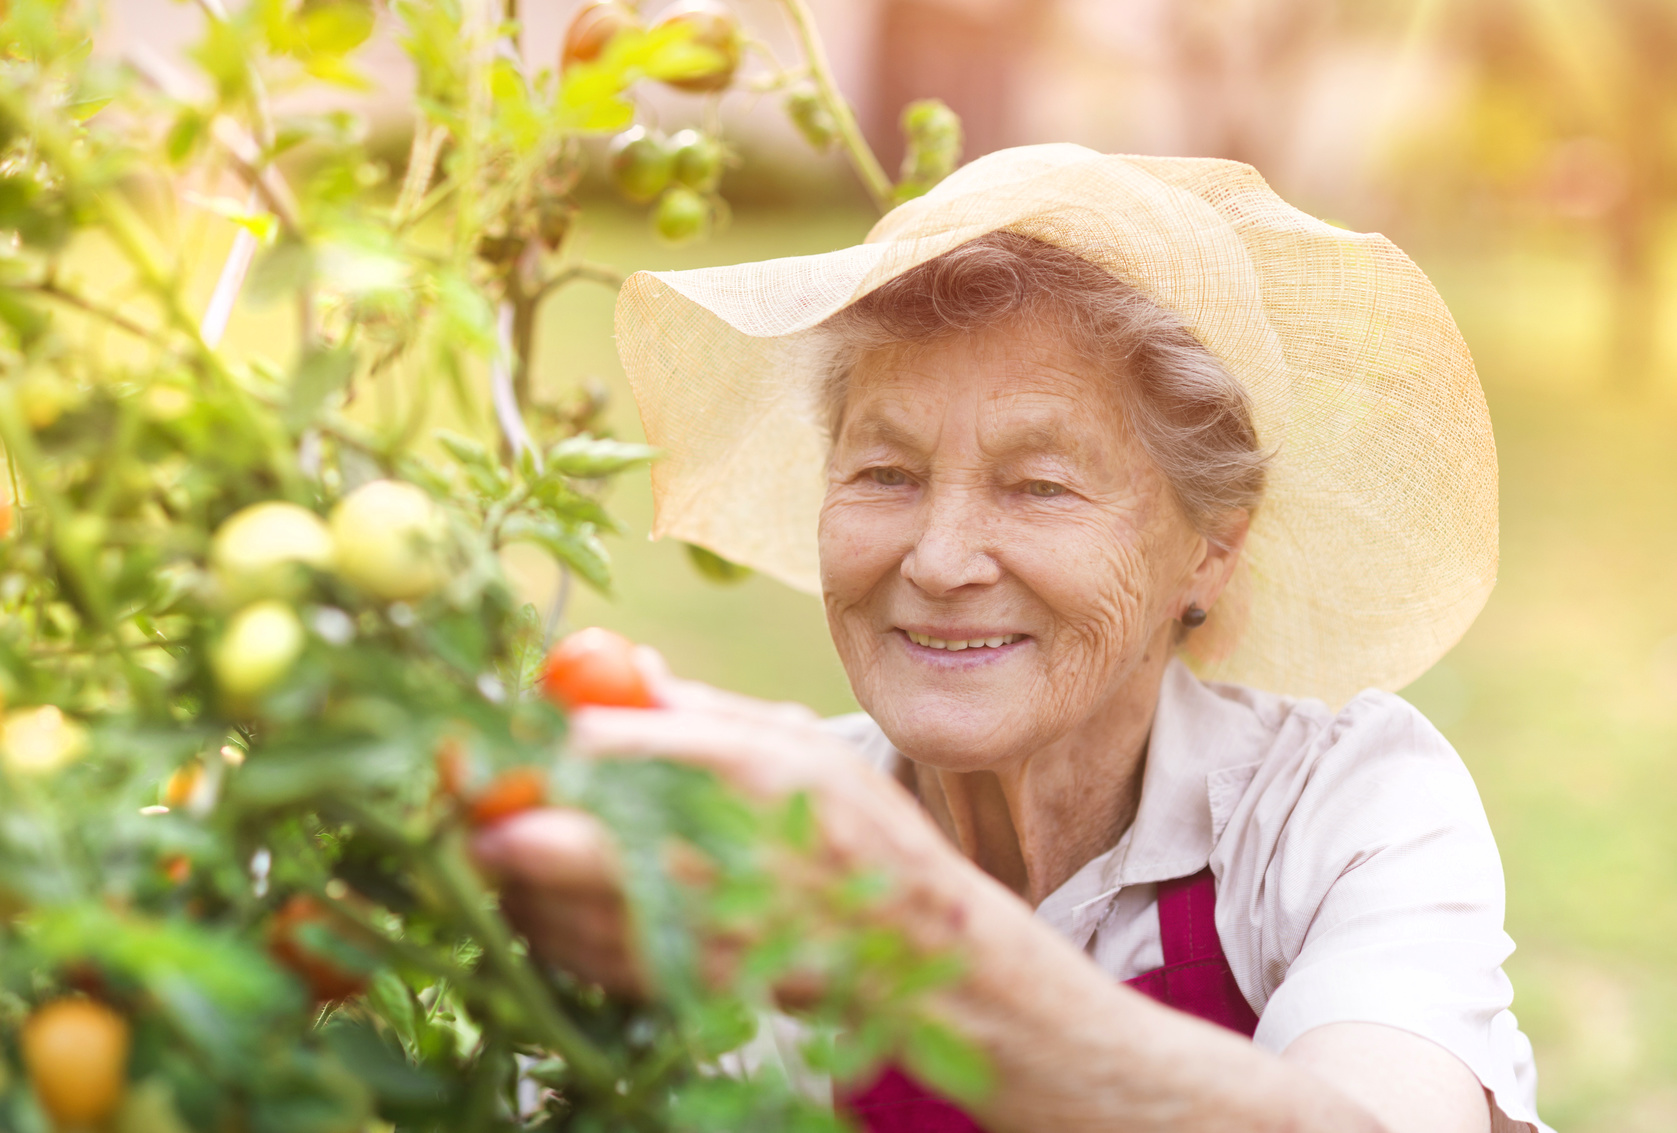 Senior woman in her garden harvesting tomatoes